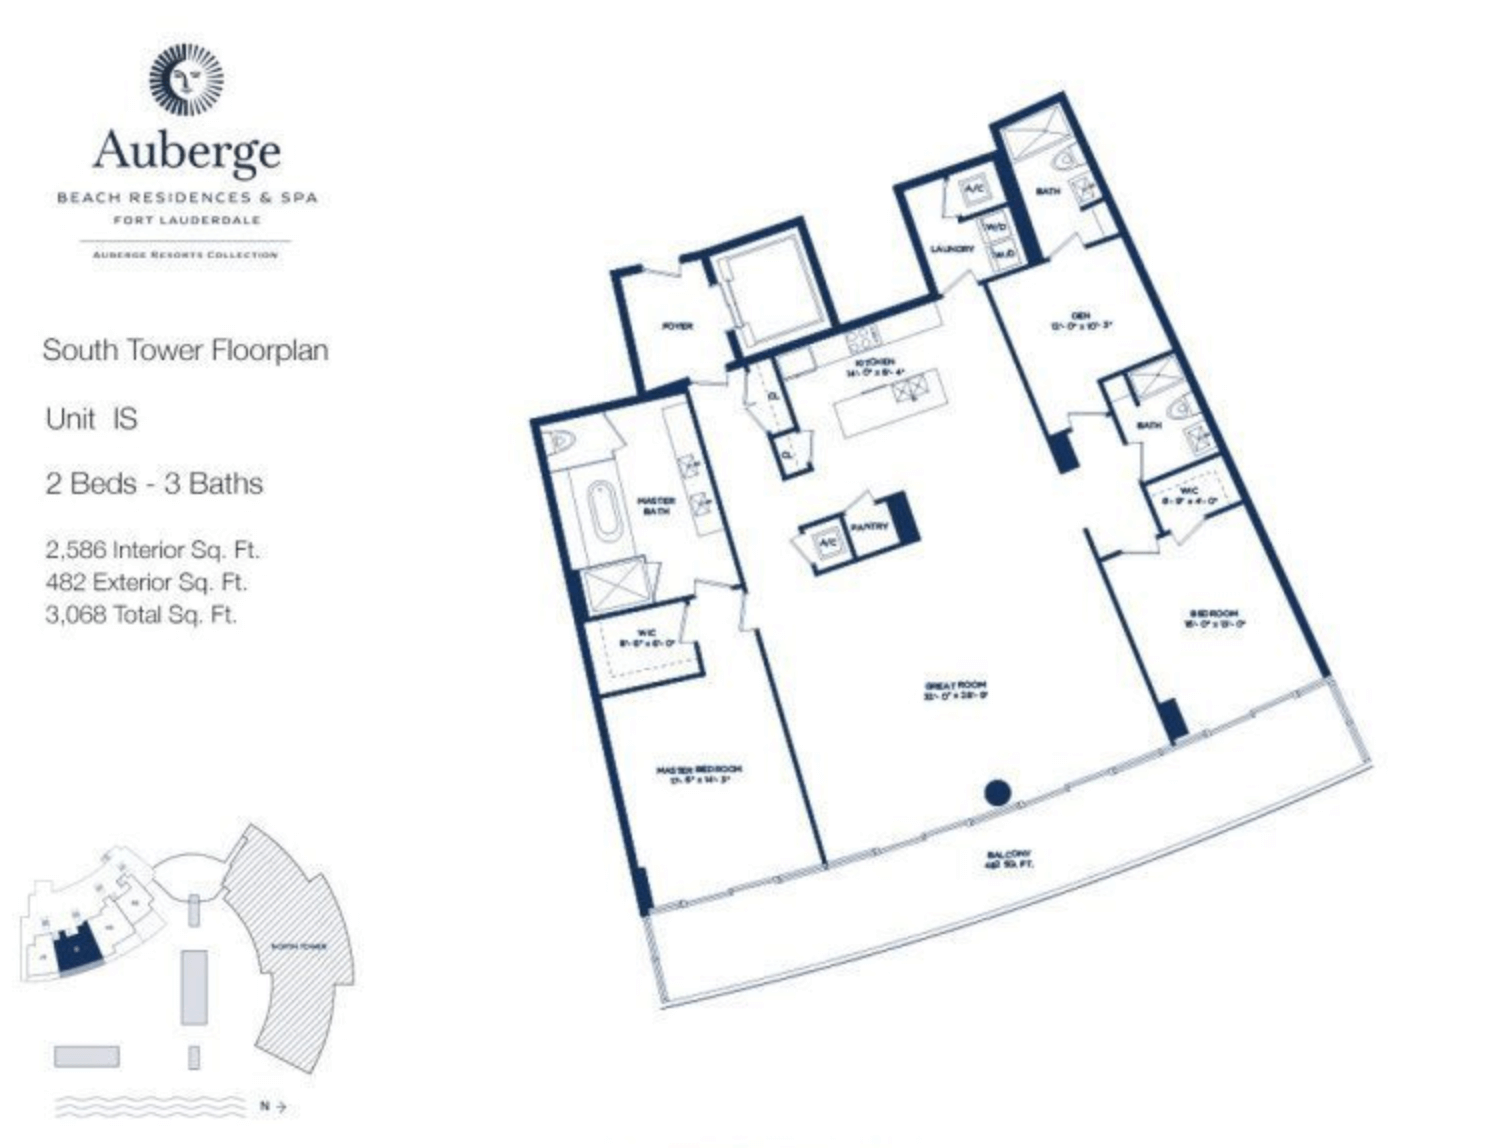 Auberge Beach Residences South Tower IS | 2 Beds - 3 baths